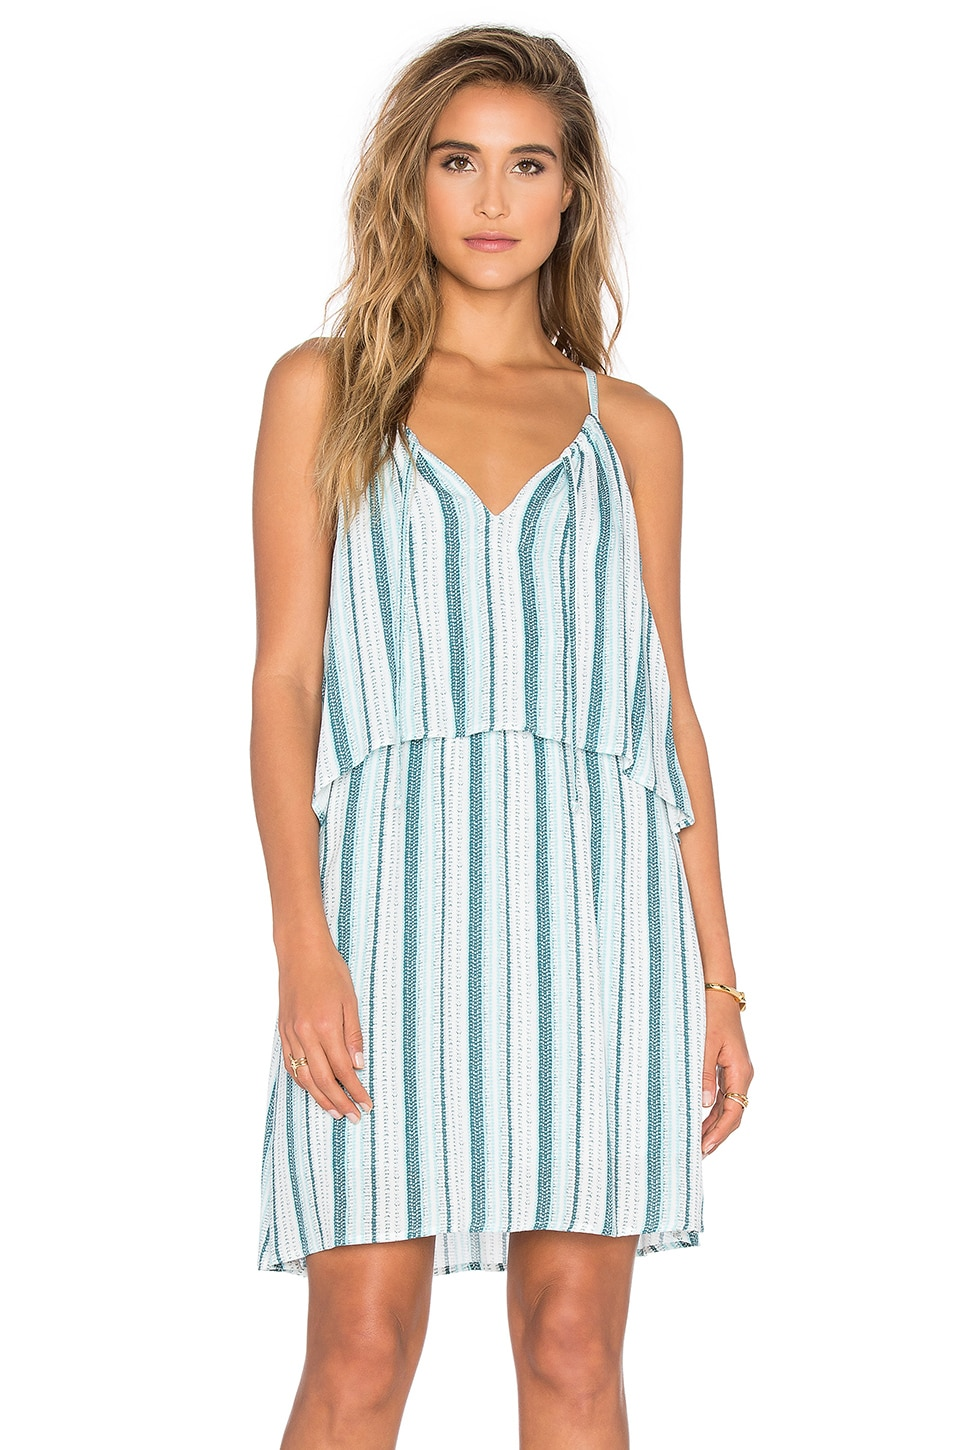 Splendid Beachcomber Stripe Dress in Antique Green & Blue Glass